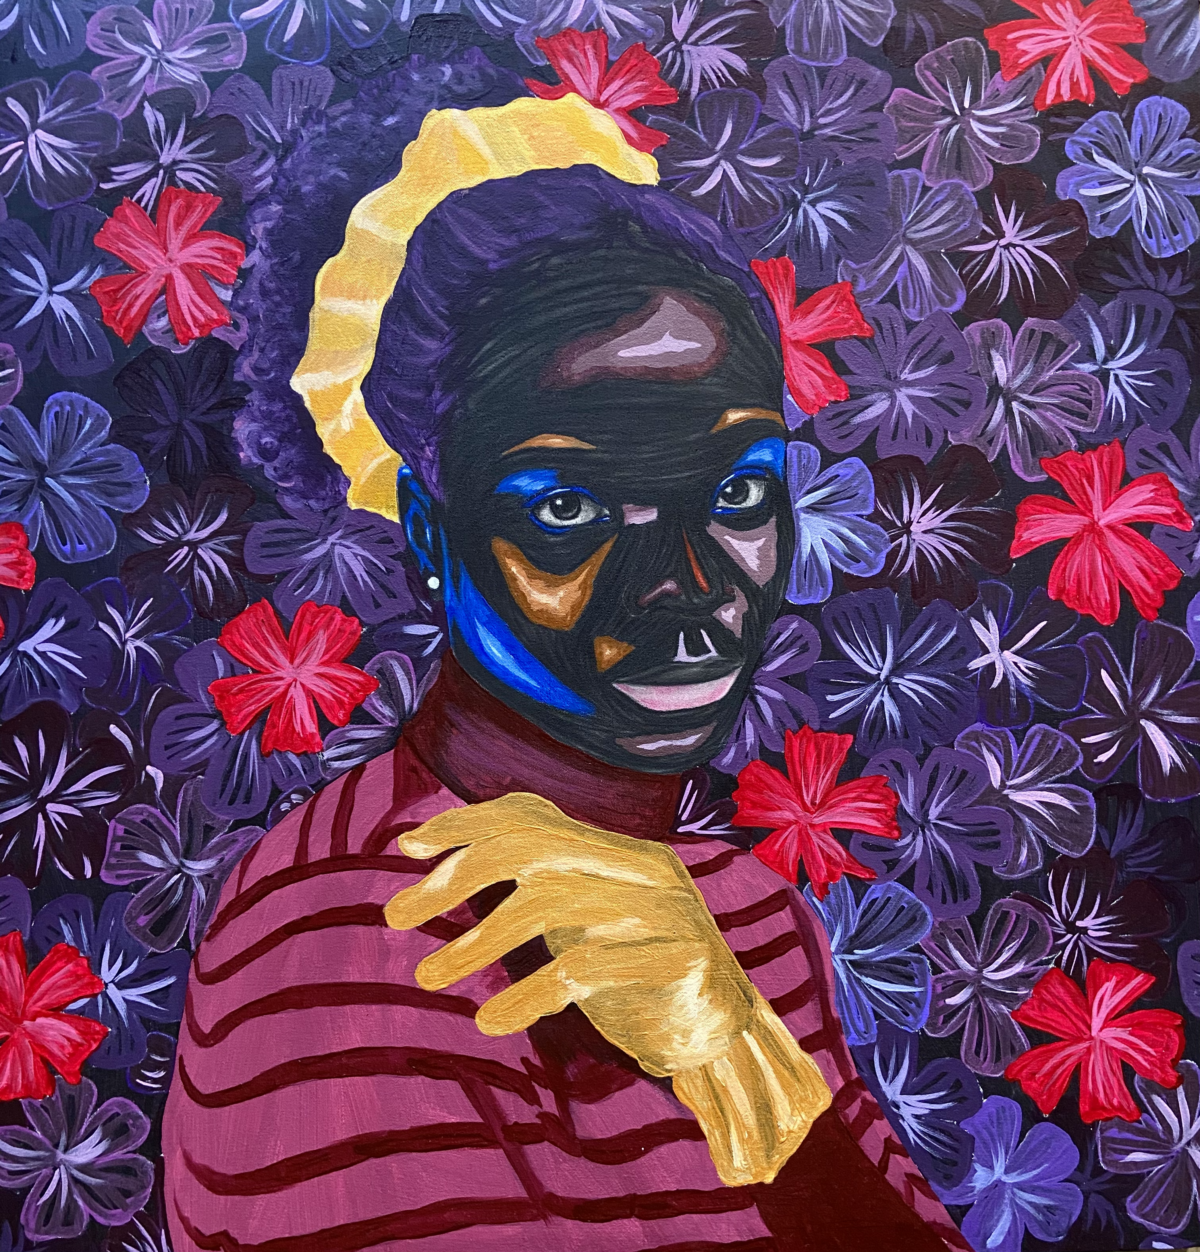 Lagos, Nigeria-based artists Adegboyega Adesina and Johnson Eziefula are brought together for a joint show by Destinee Ross-Sutton and the Ross-Sutton Gallery